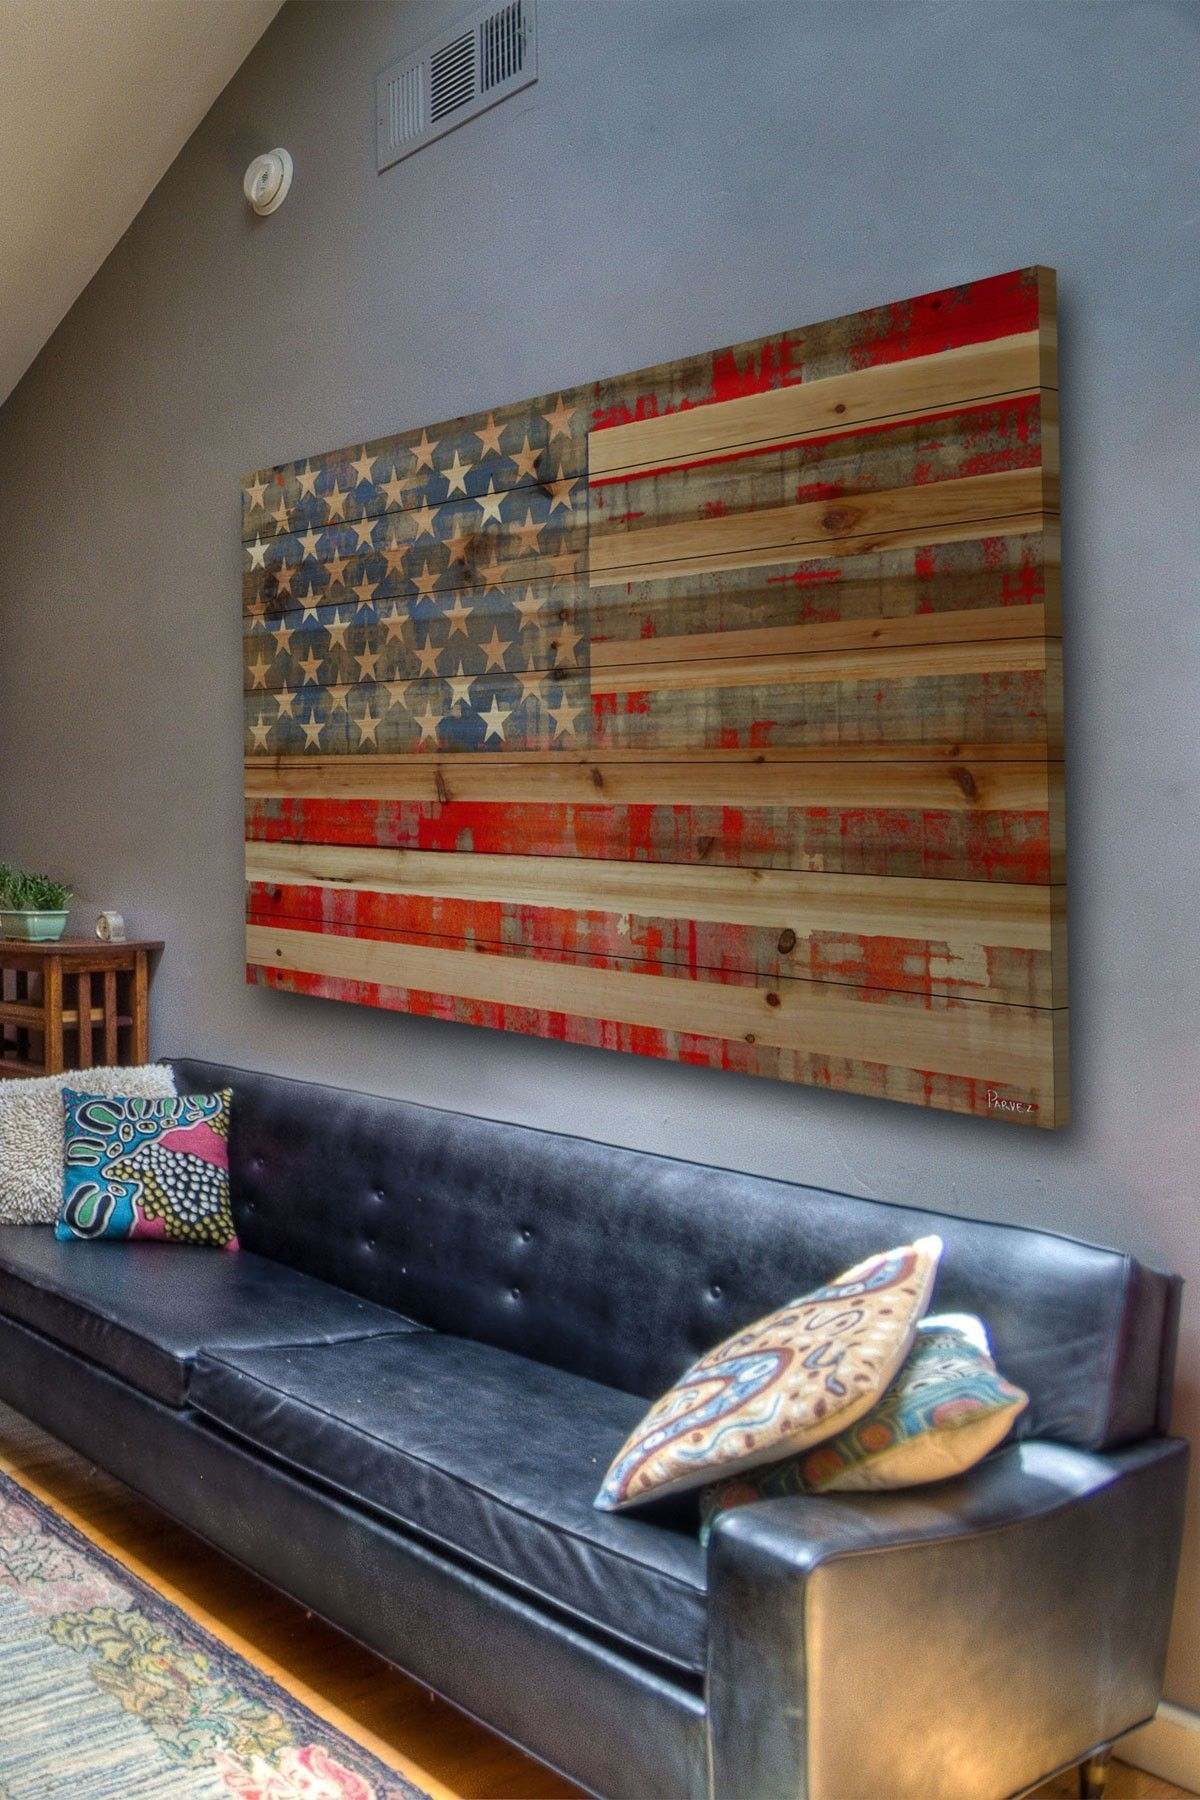 Rustic American Flag Decor Maybe For A Basement Or Lake House Intended For Most Recently Released Rustic American Flag Wall Art (View 12 of 20)